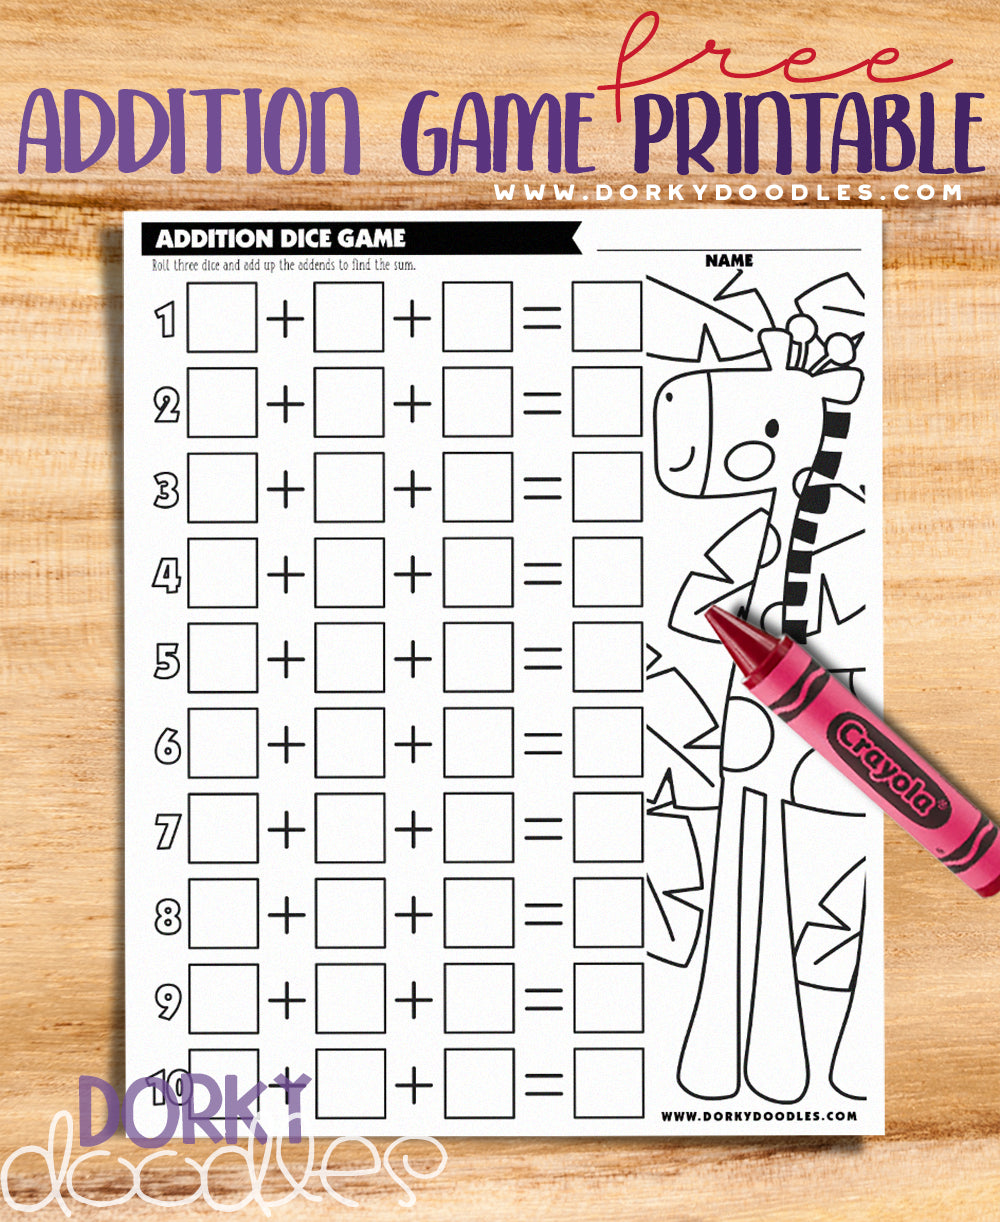 Dice Rolling And Addition Game With 3 Addends Dorky Doodles